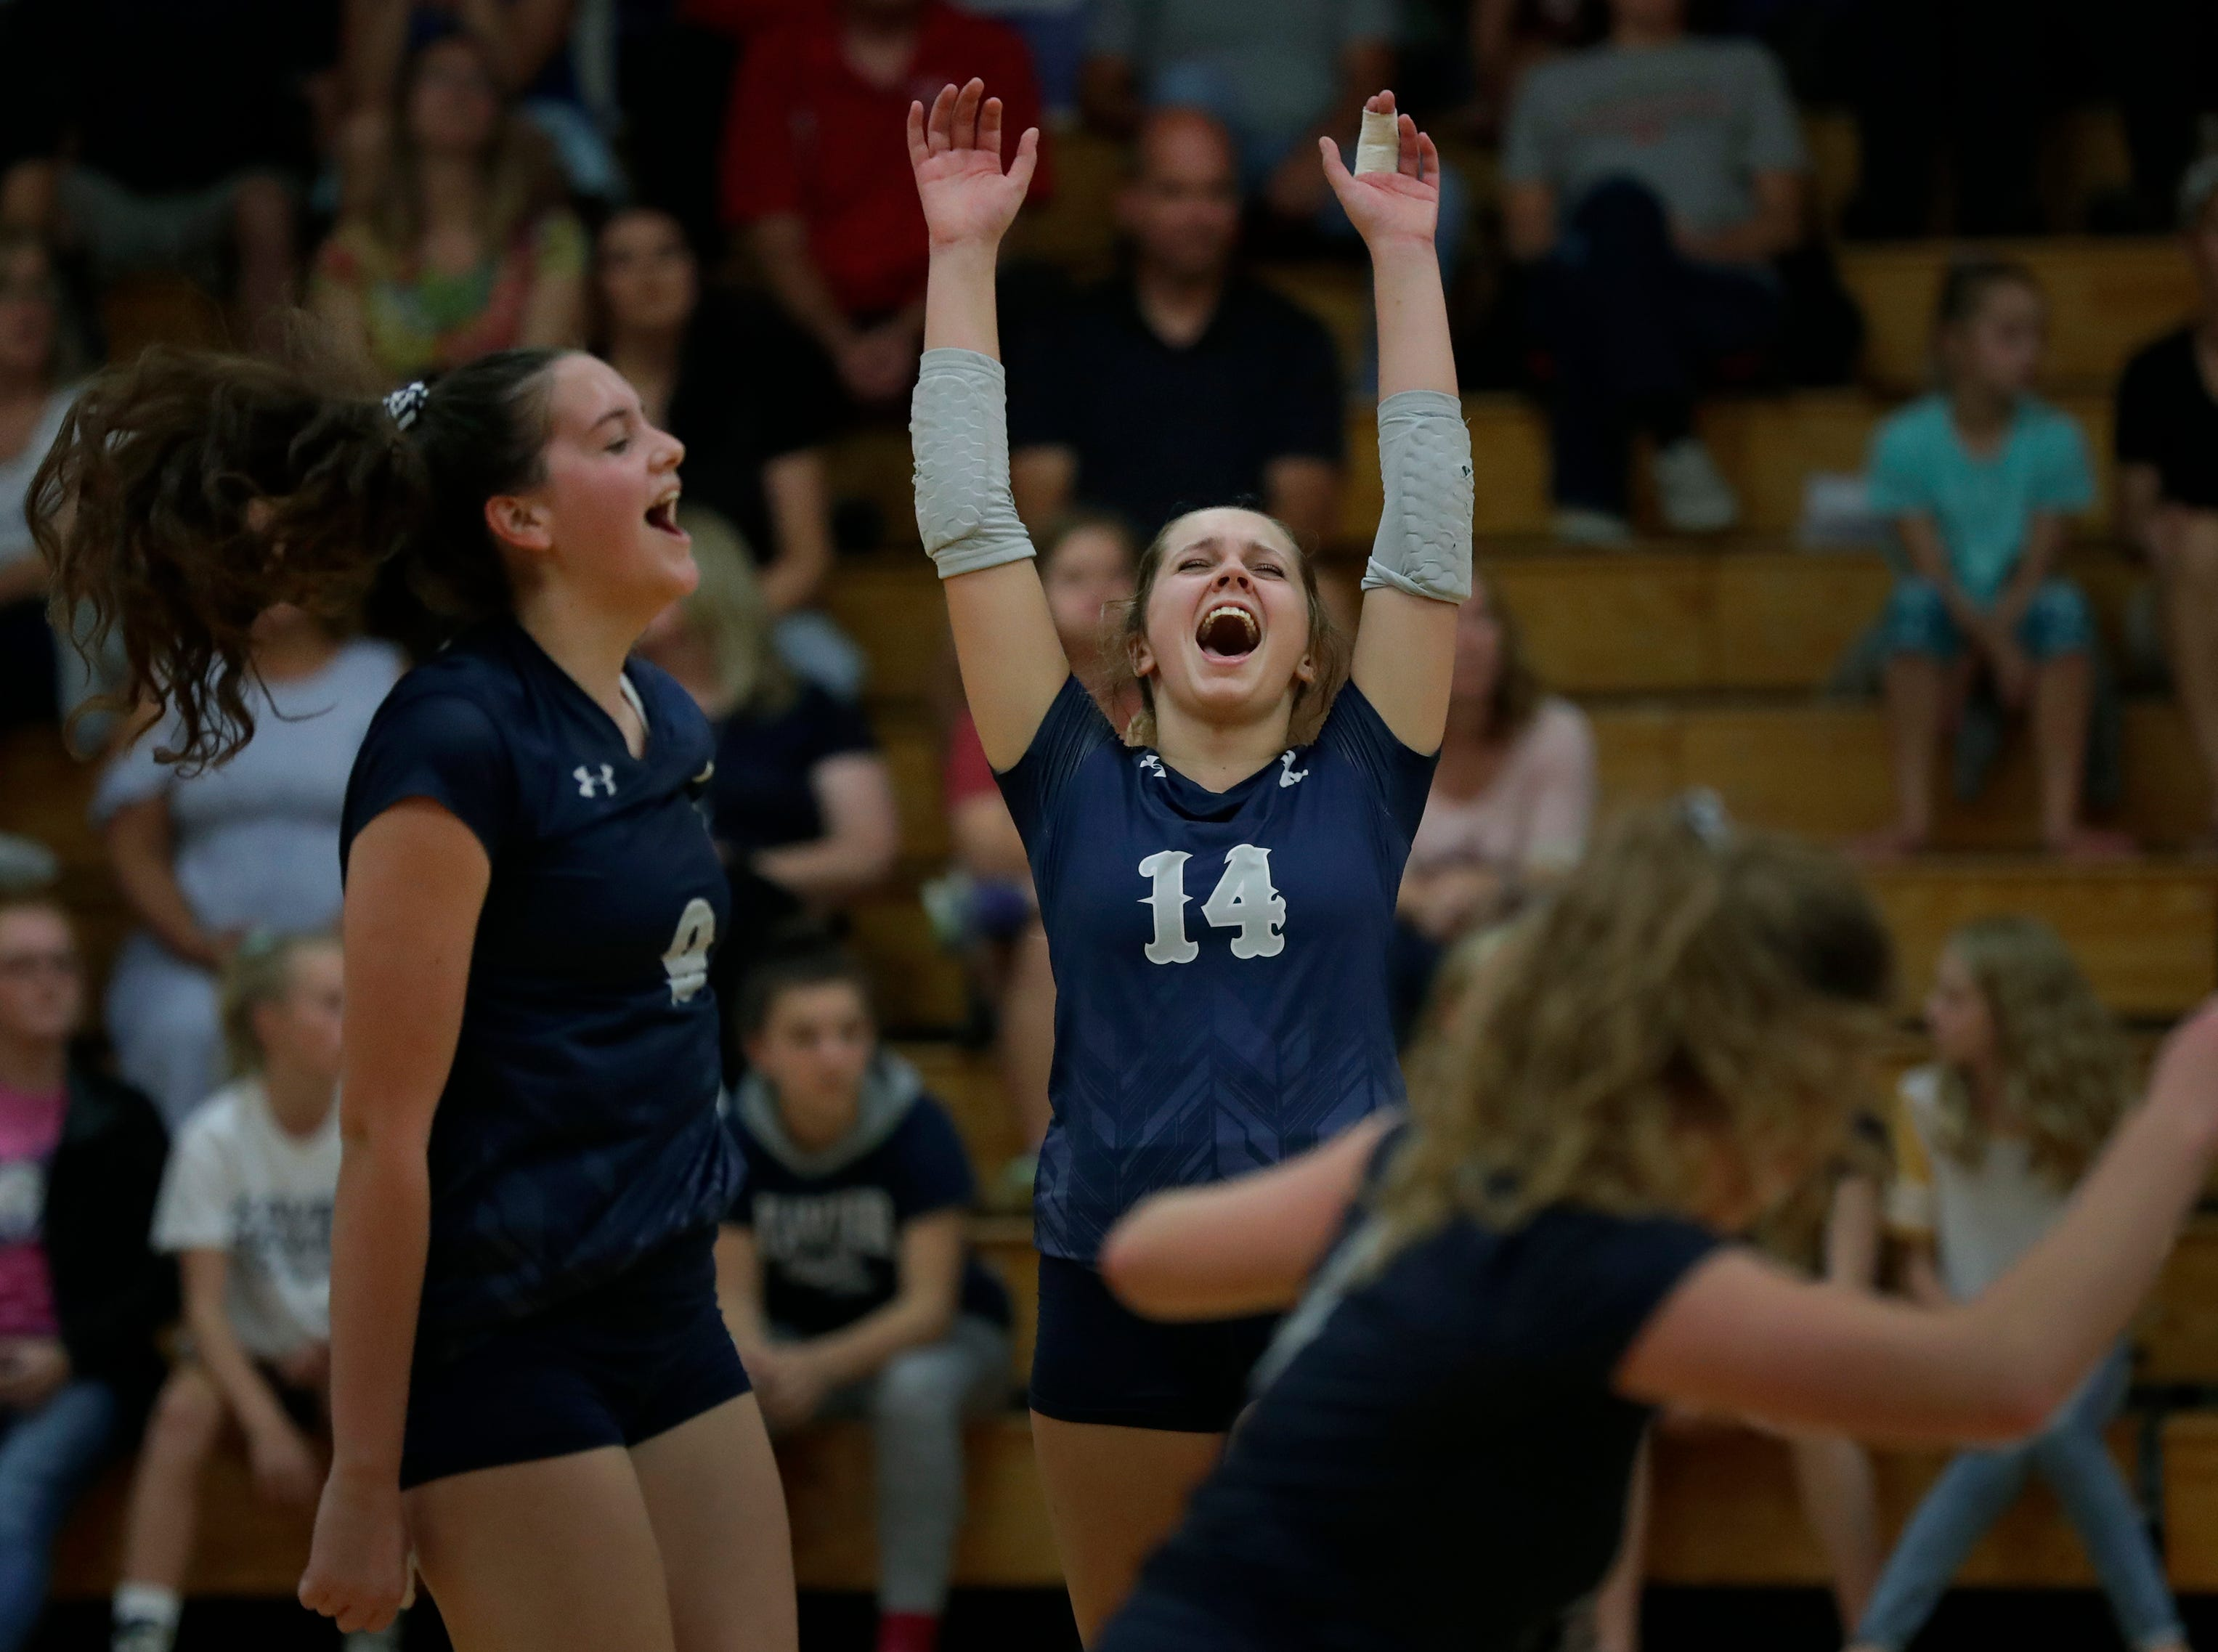 Xavier High School's Gabby Murray (9), Catherine Adair (14) and Emma Vosters (5) celebrate winning a point against New London High School during their girls volleyball match Thursday, Sept. 13, 2018, in Appleton, Wis. Dan Powers/USA TODAY NETWORK-Wisconsin